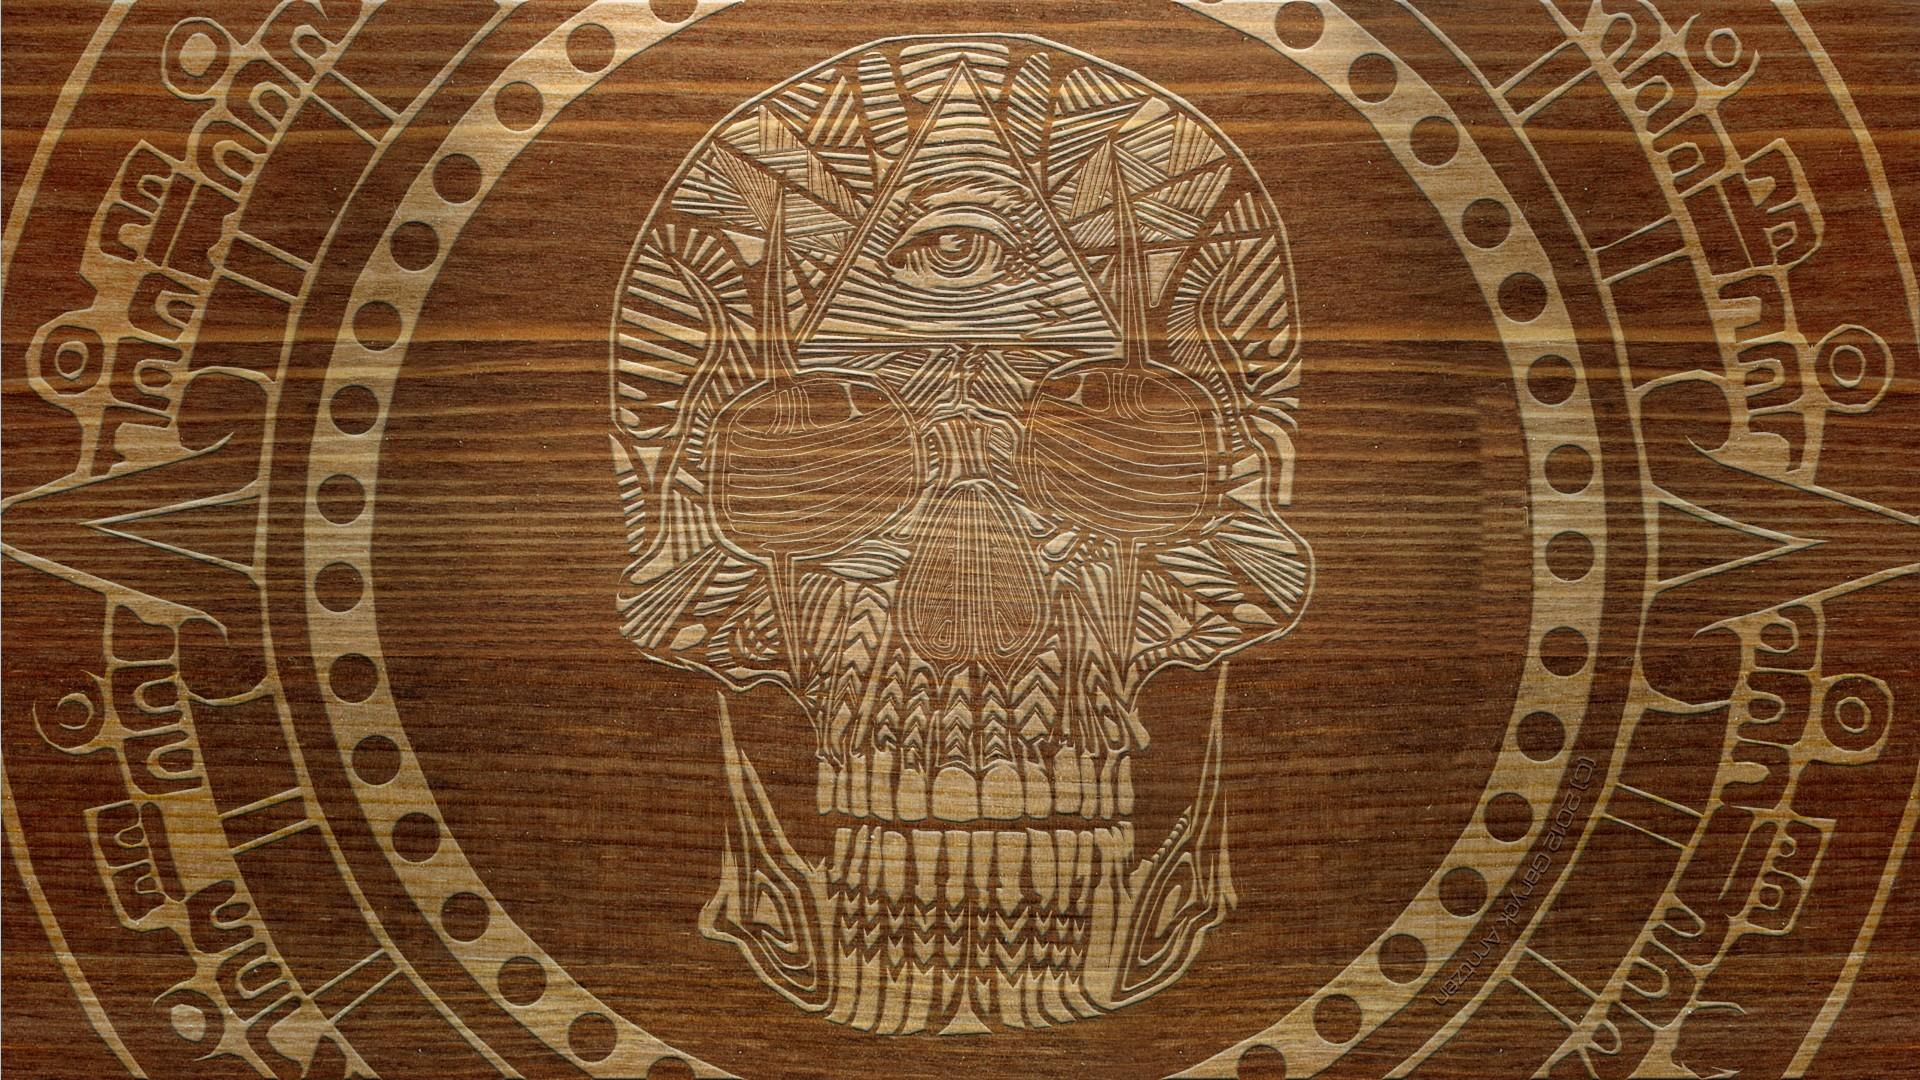 Patterns masonic digital art engraving symbol carving wallpaper ...